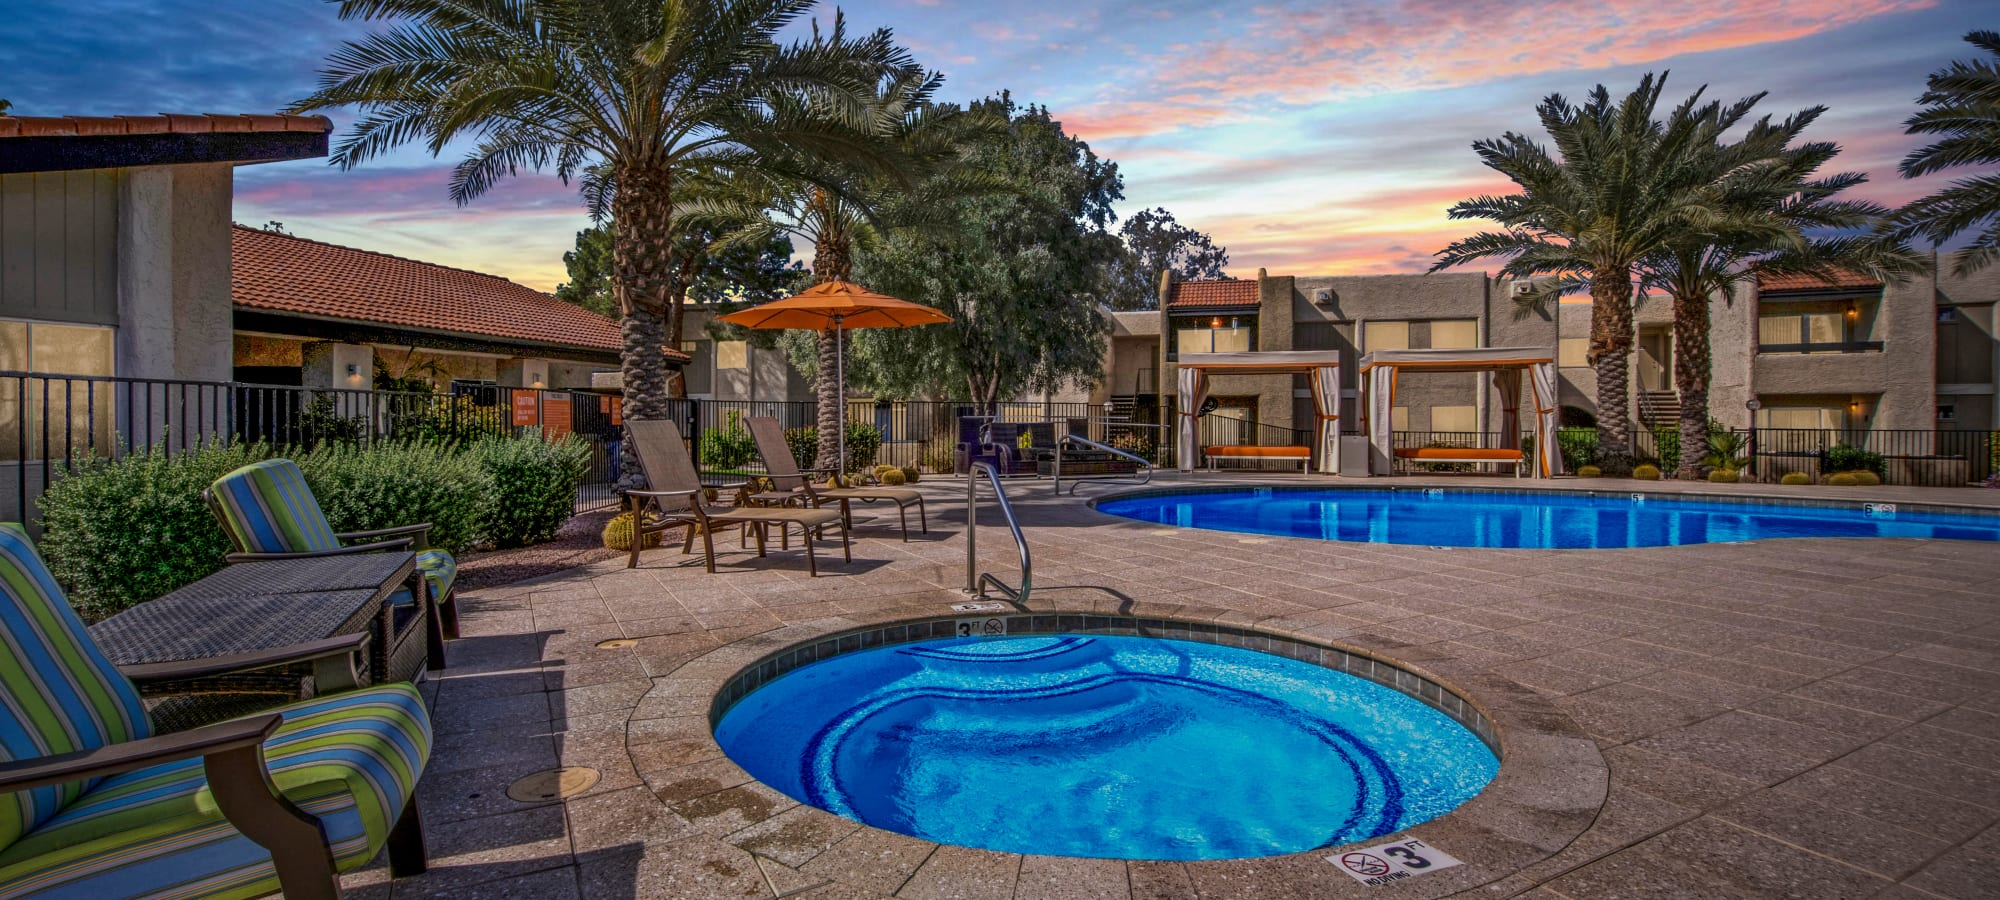 Resort style pool at Avia McCormick Ranch Apartments in Scottsdale, Arizona